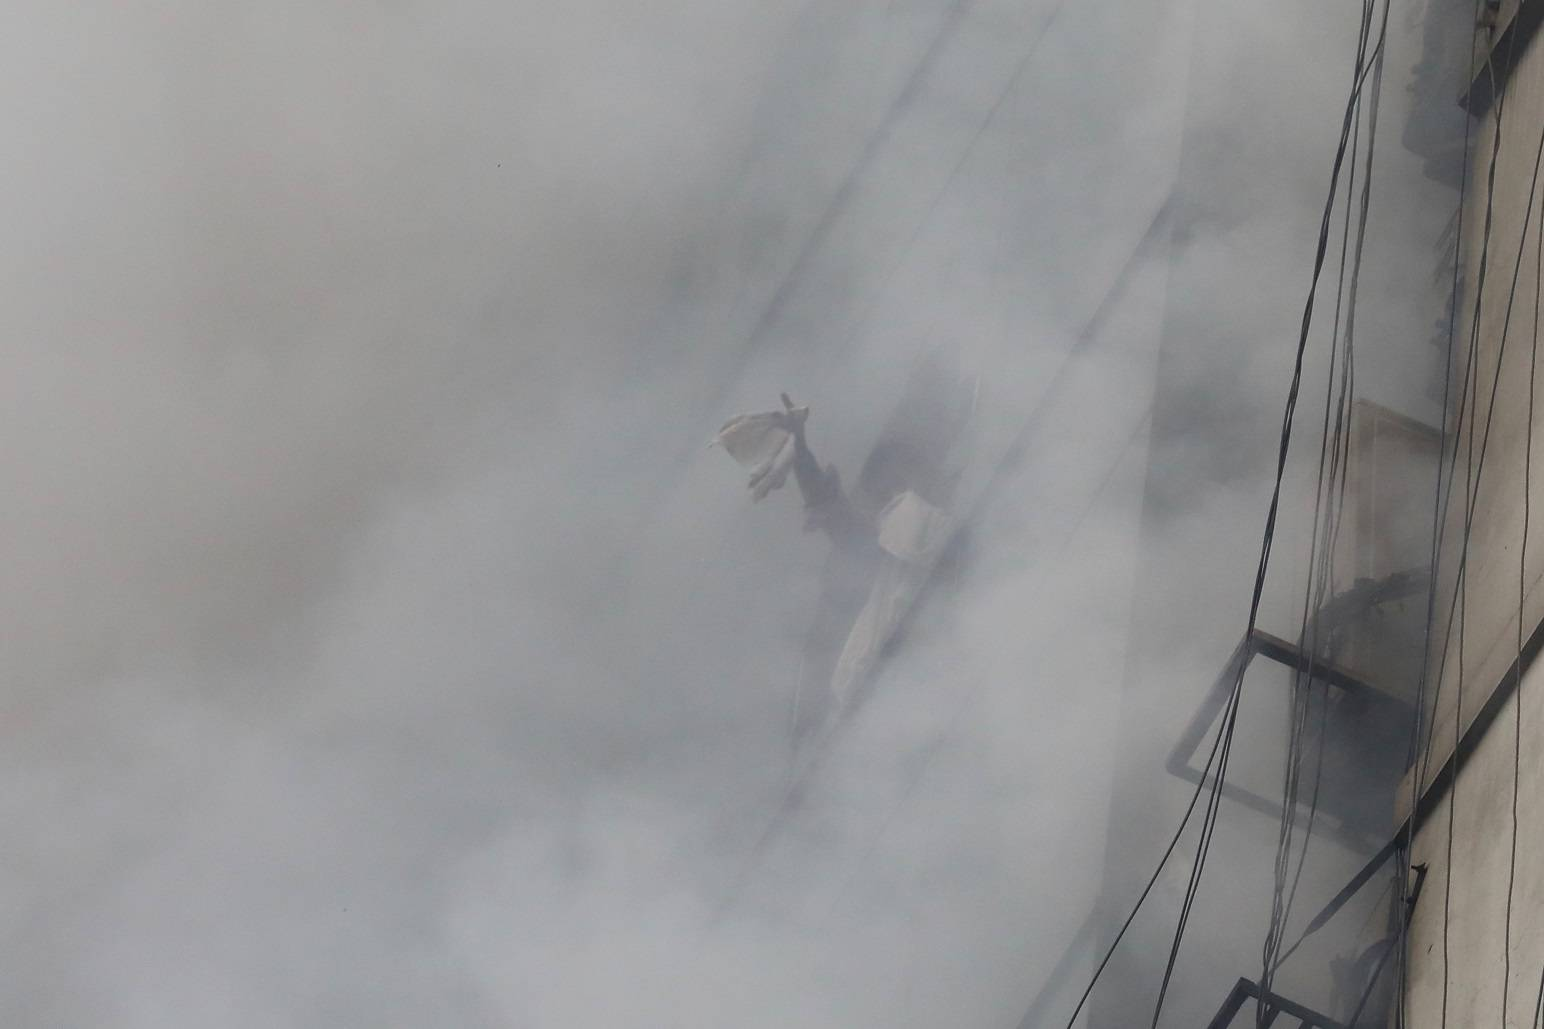 A trapped person waves to be rescued as fire broke out at a multi-storey commercial building in Dhaka